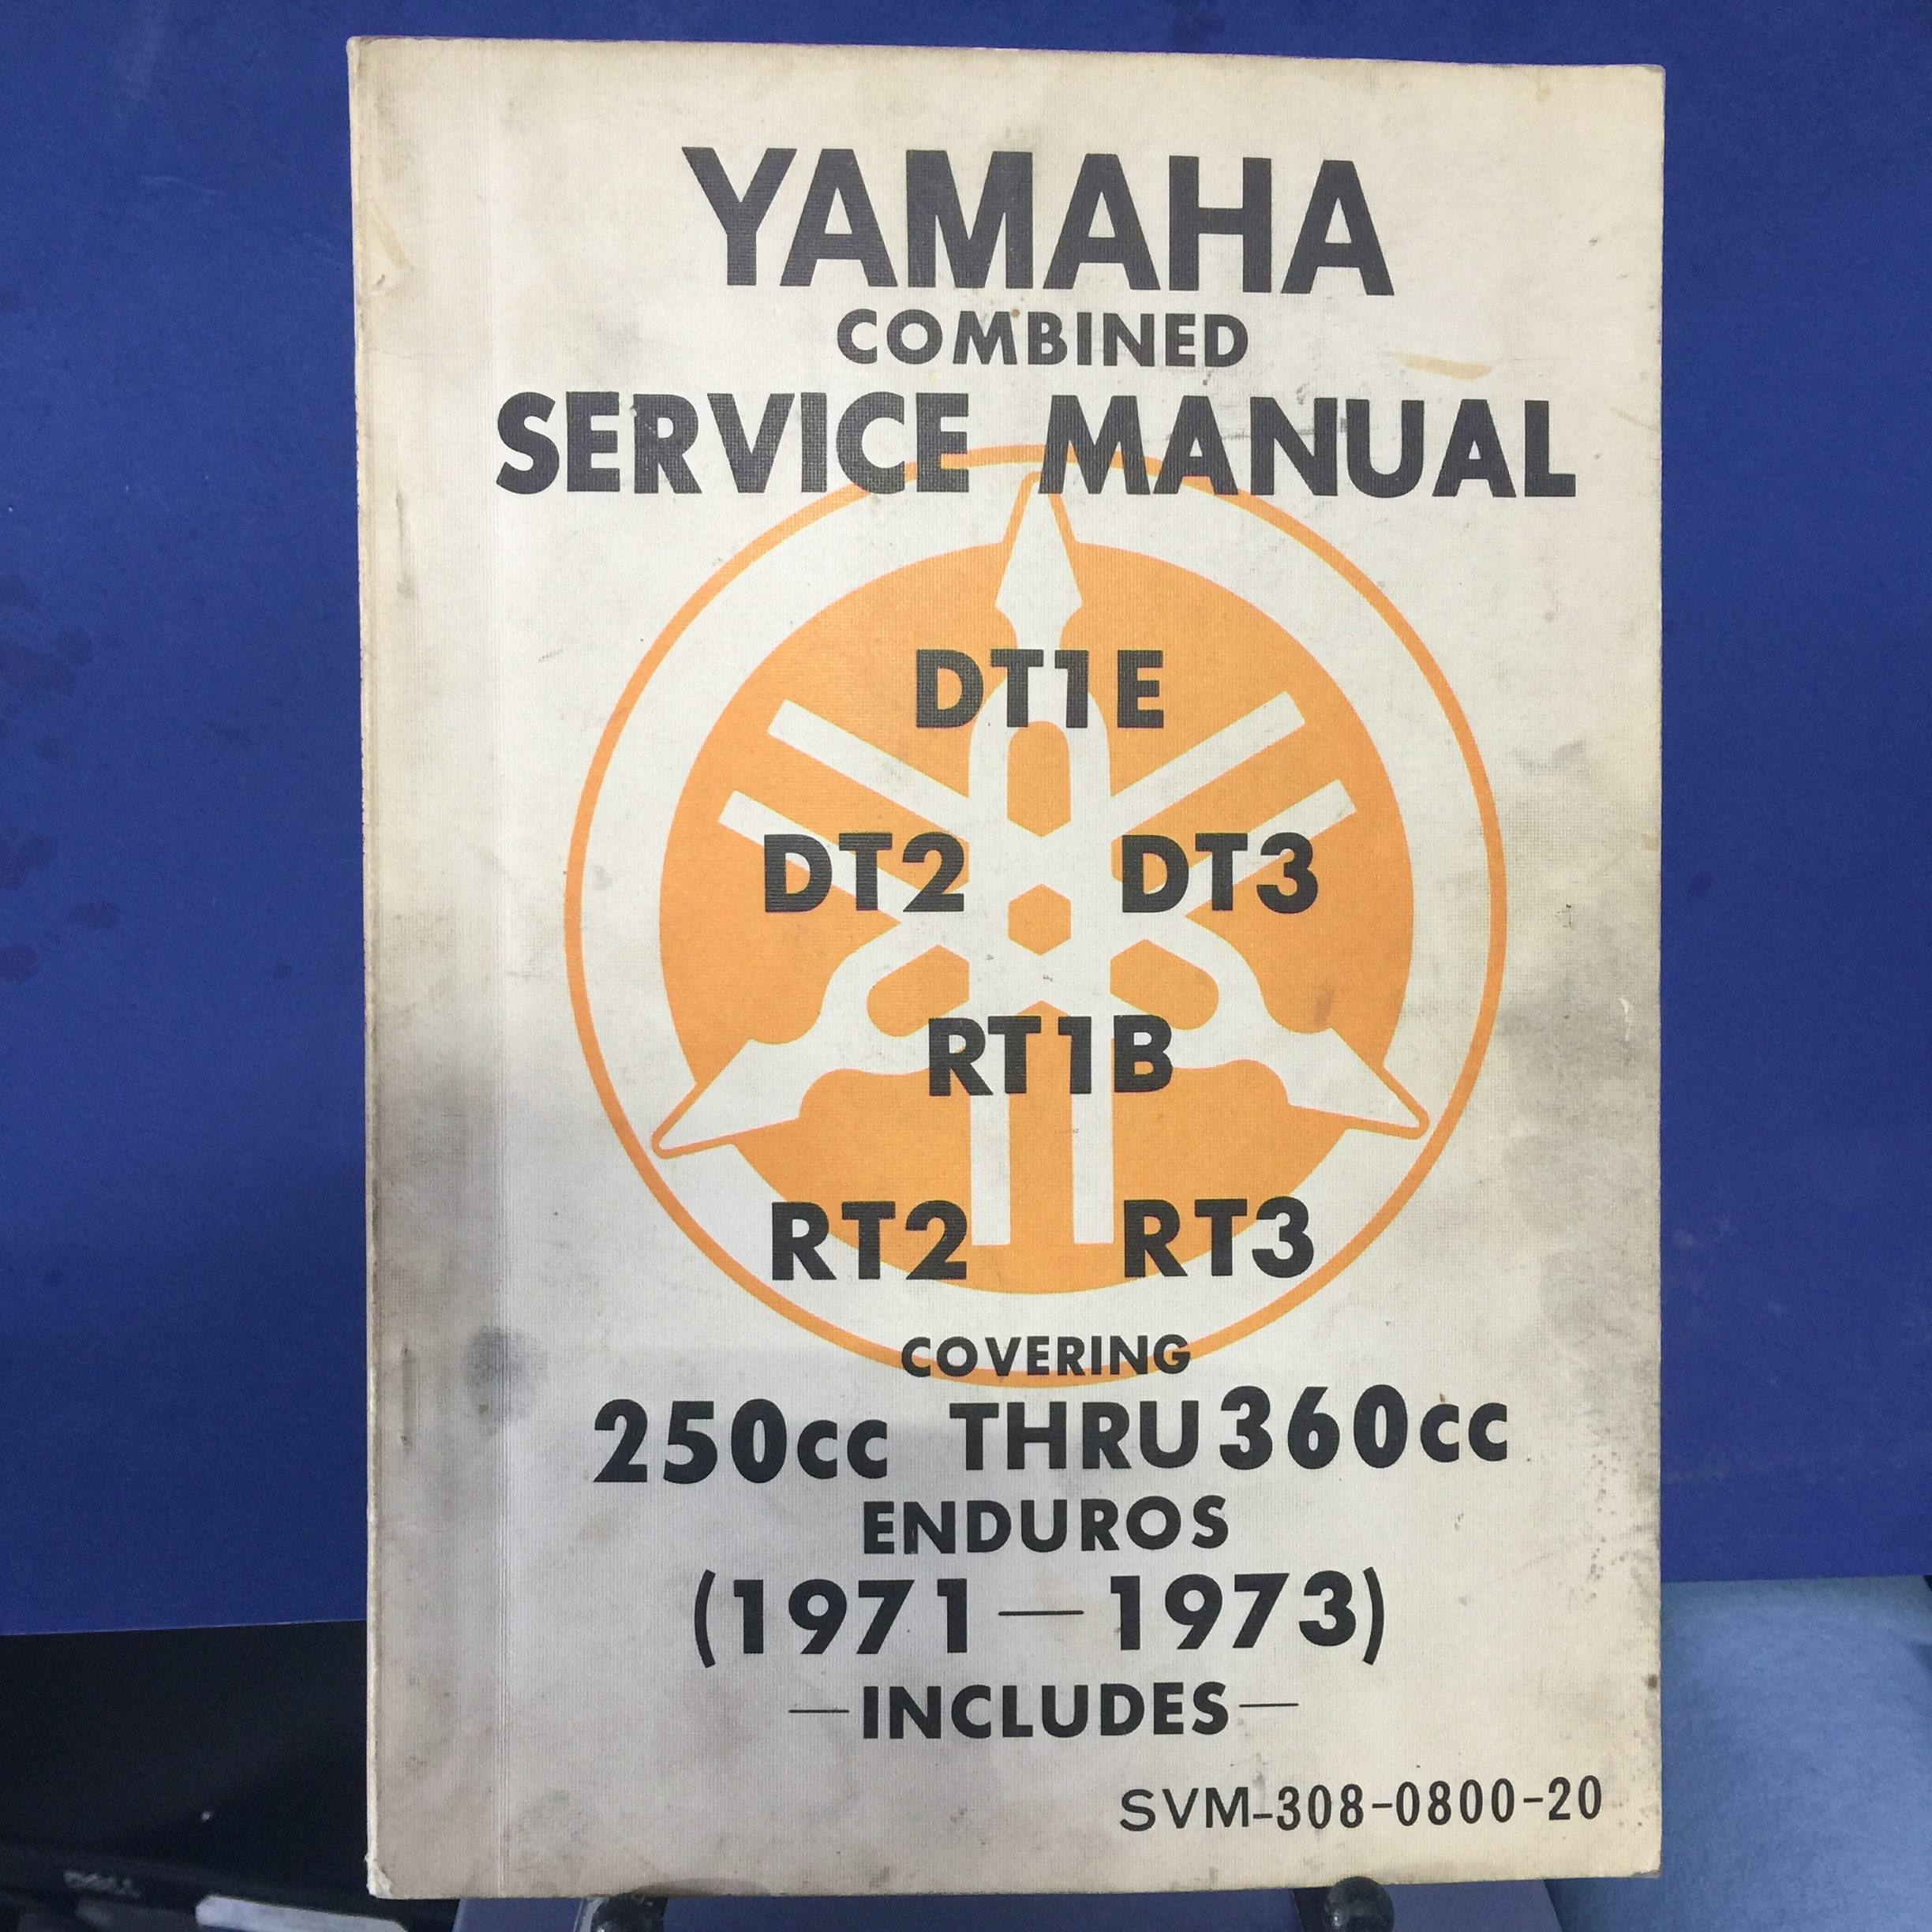 IMG_7849 e1525374826662 yamaha combined service manual, dt1e, dt2 , dt3, rt1b , rt2 , rt3